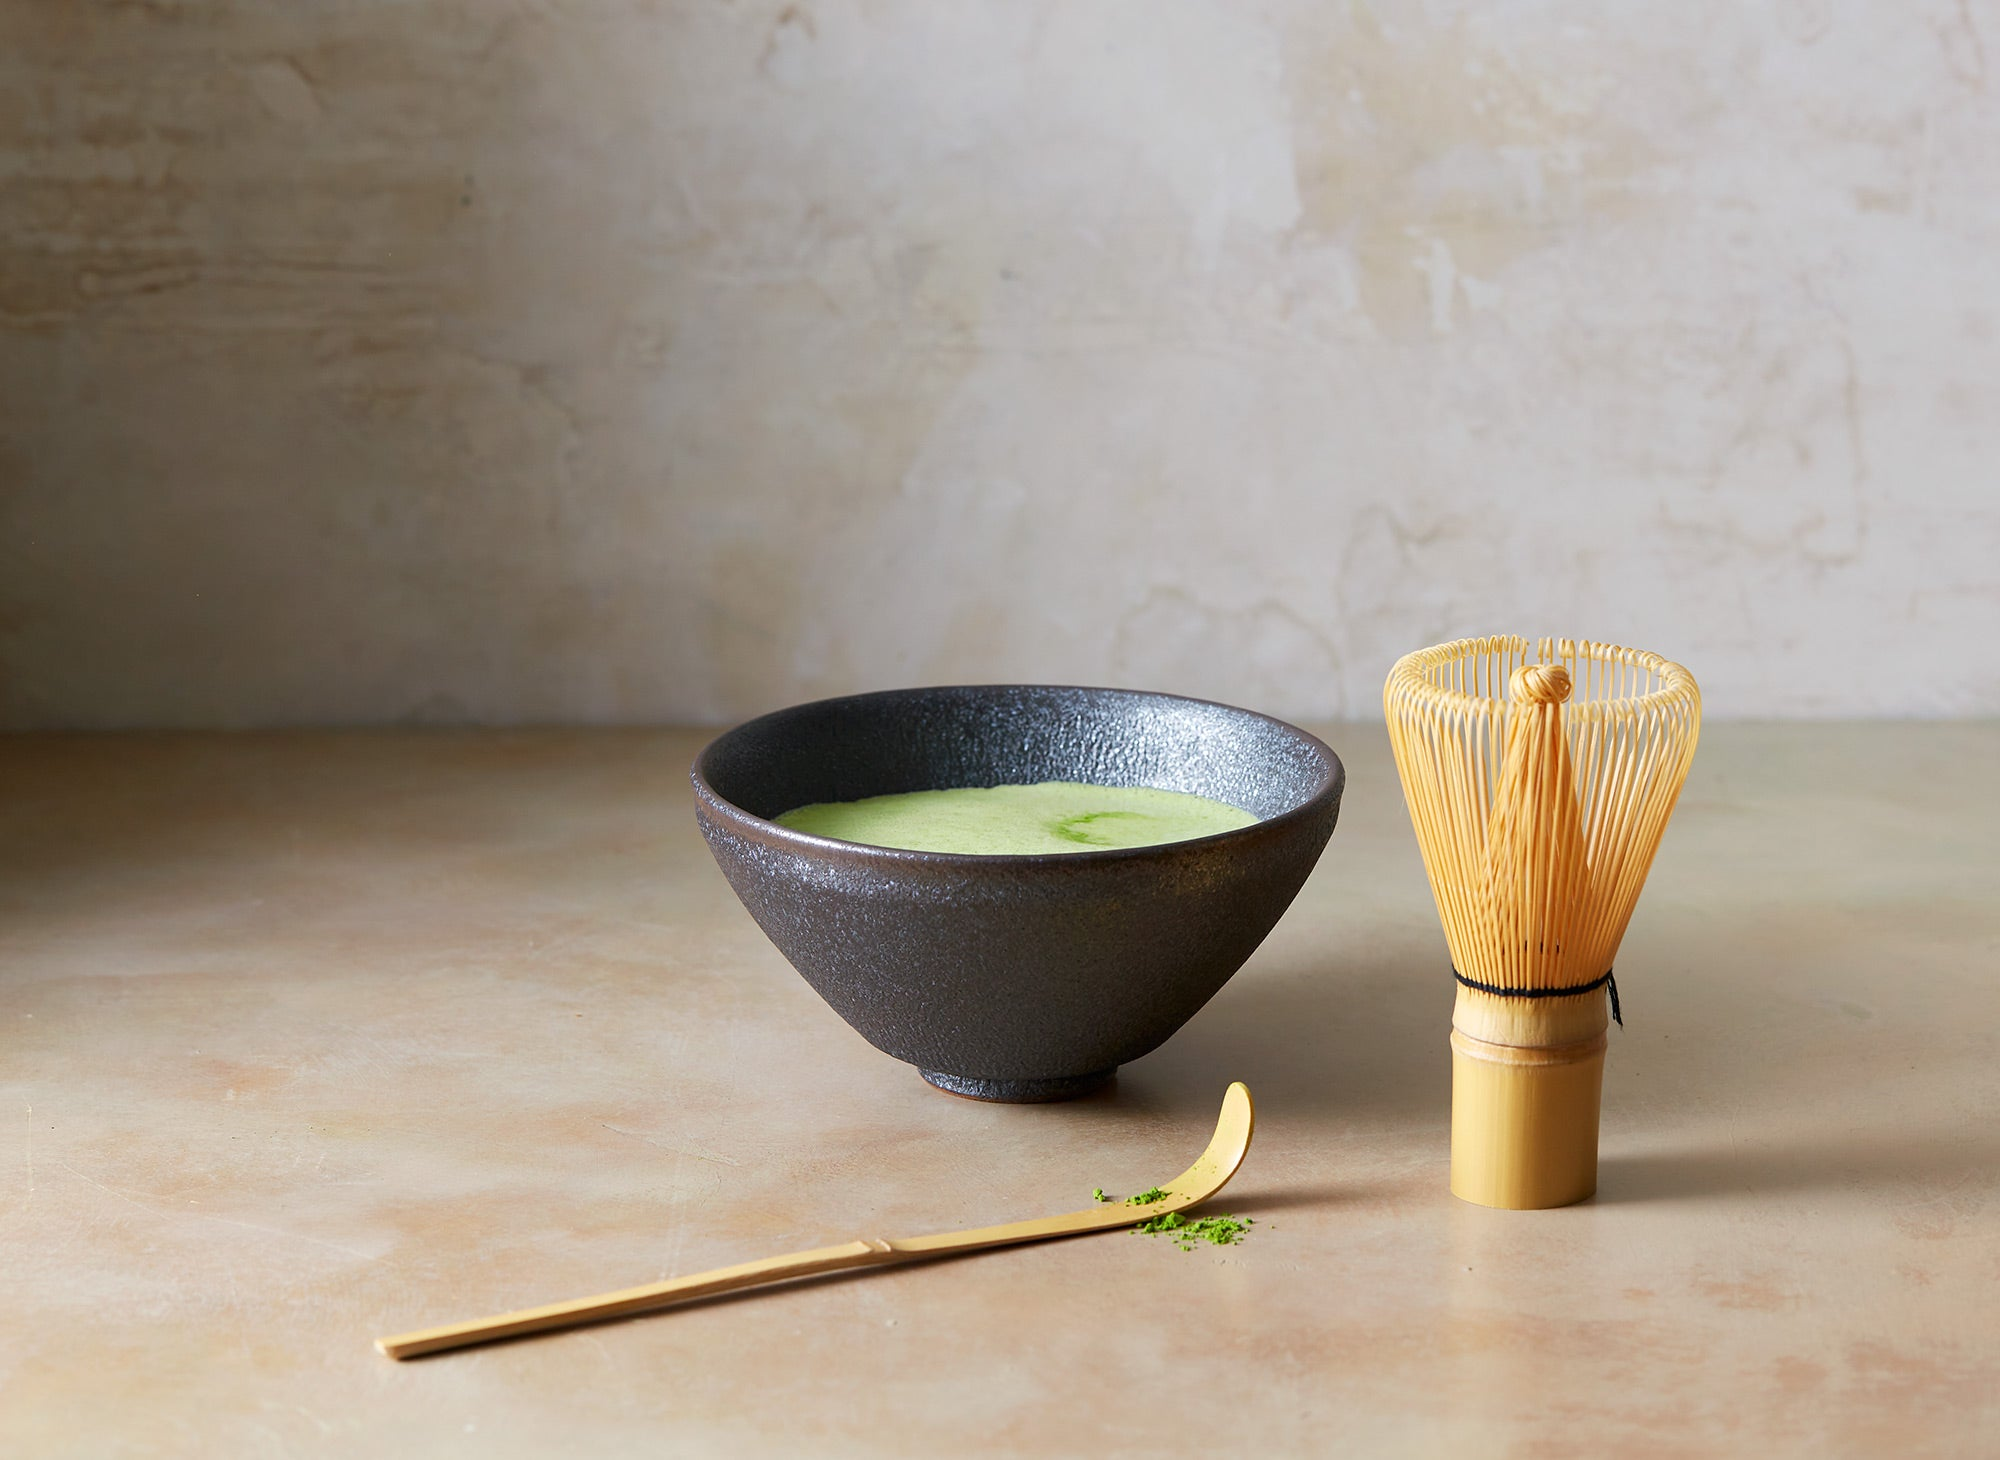 Shop our collection of premium matcha accessories at BELLOCQ, home to the world's finest luxury tea. FInd beautiful matcha bowls, whisks and more.